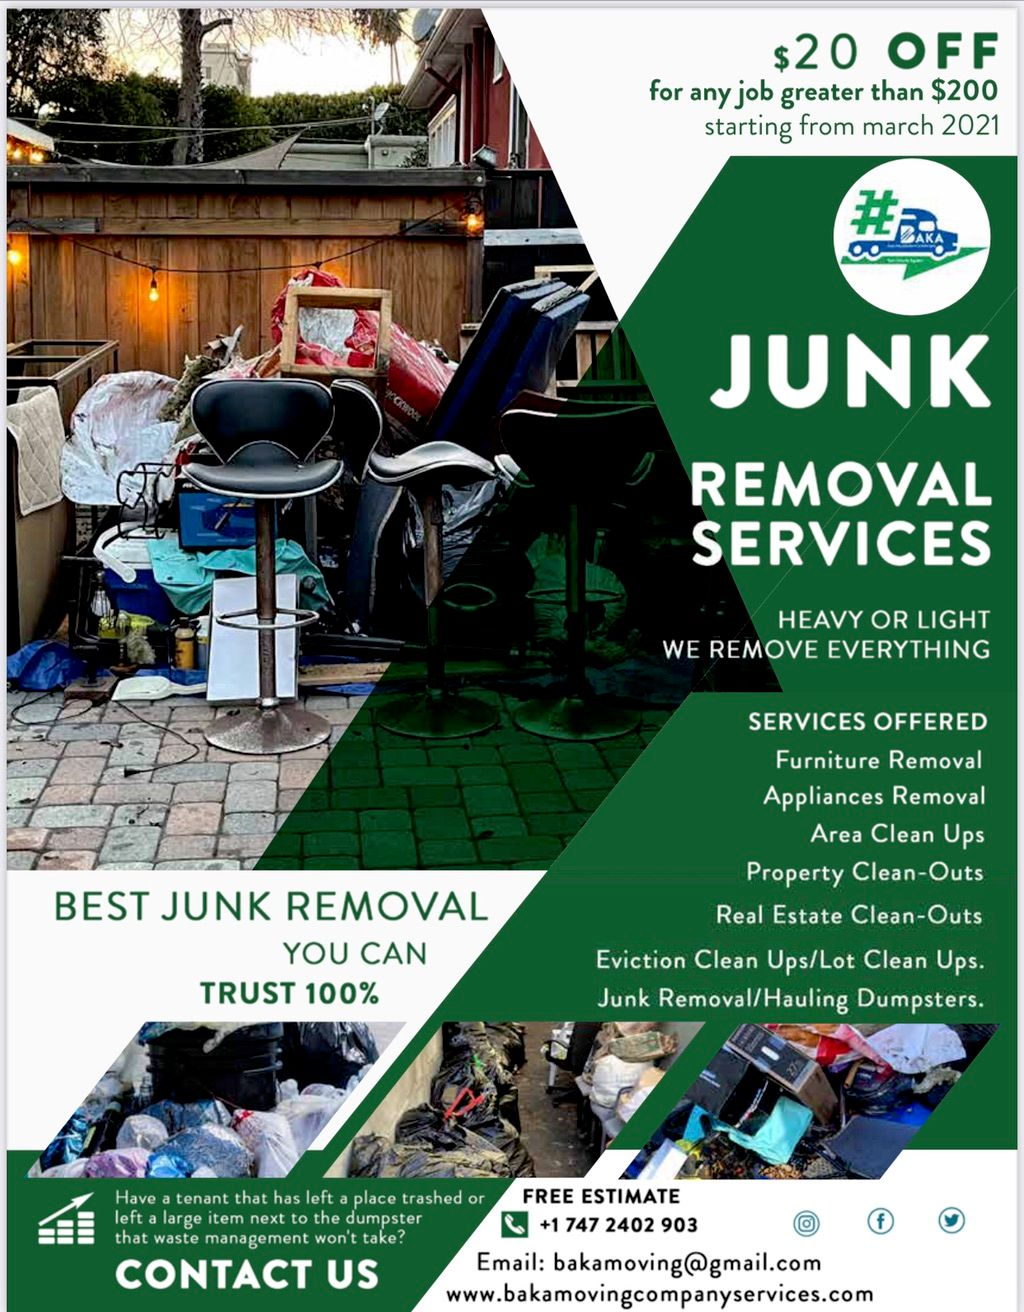 Baka junk removal and service